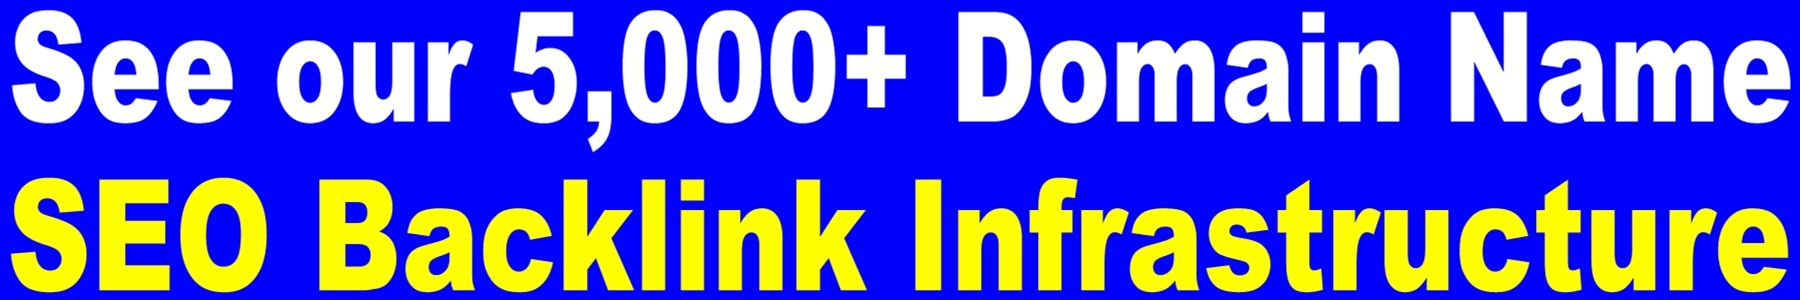 Click to see TDE SEO Backlink Infrastructure of over 5,000 Domain Names - CLICK NOW